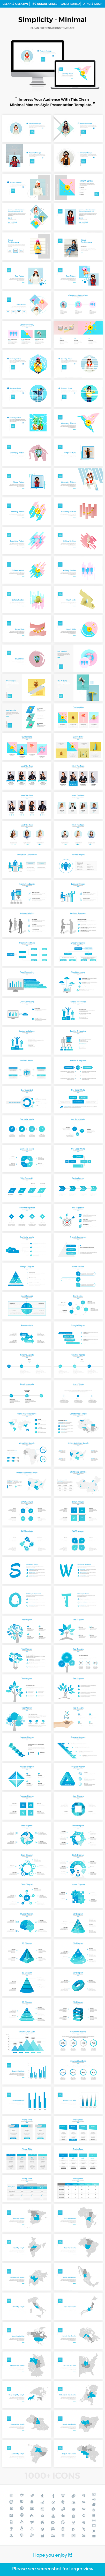 Simplicity - Minimal Powerpoint Template - PowerPoint Templates Presentation Templates